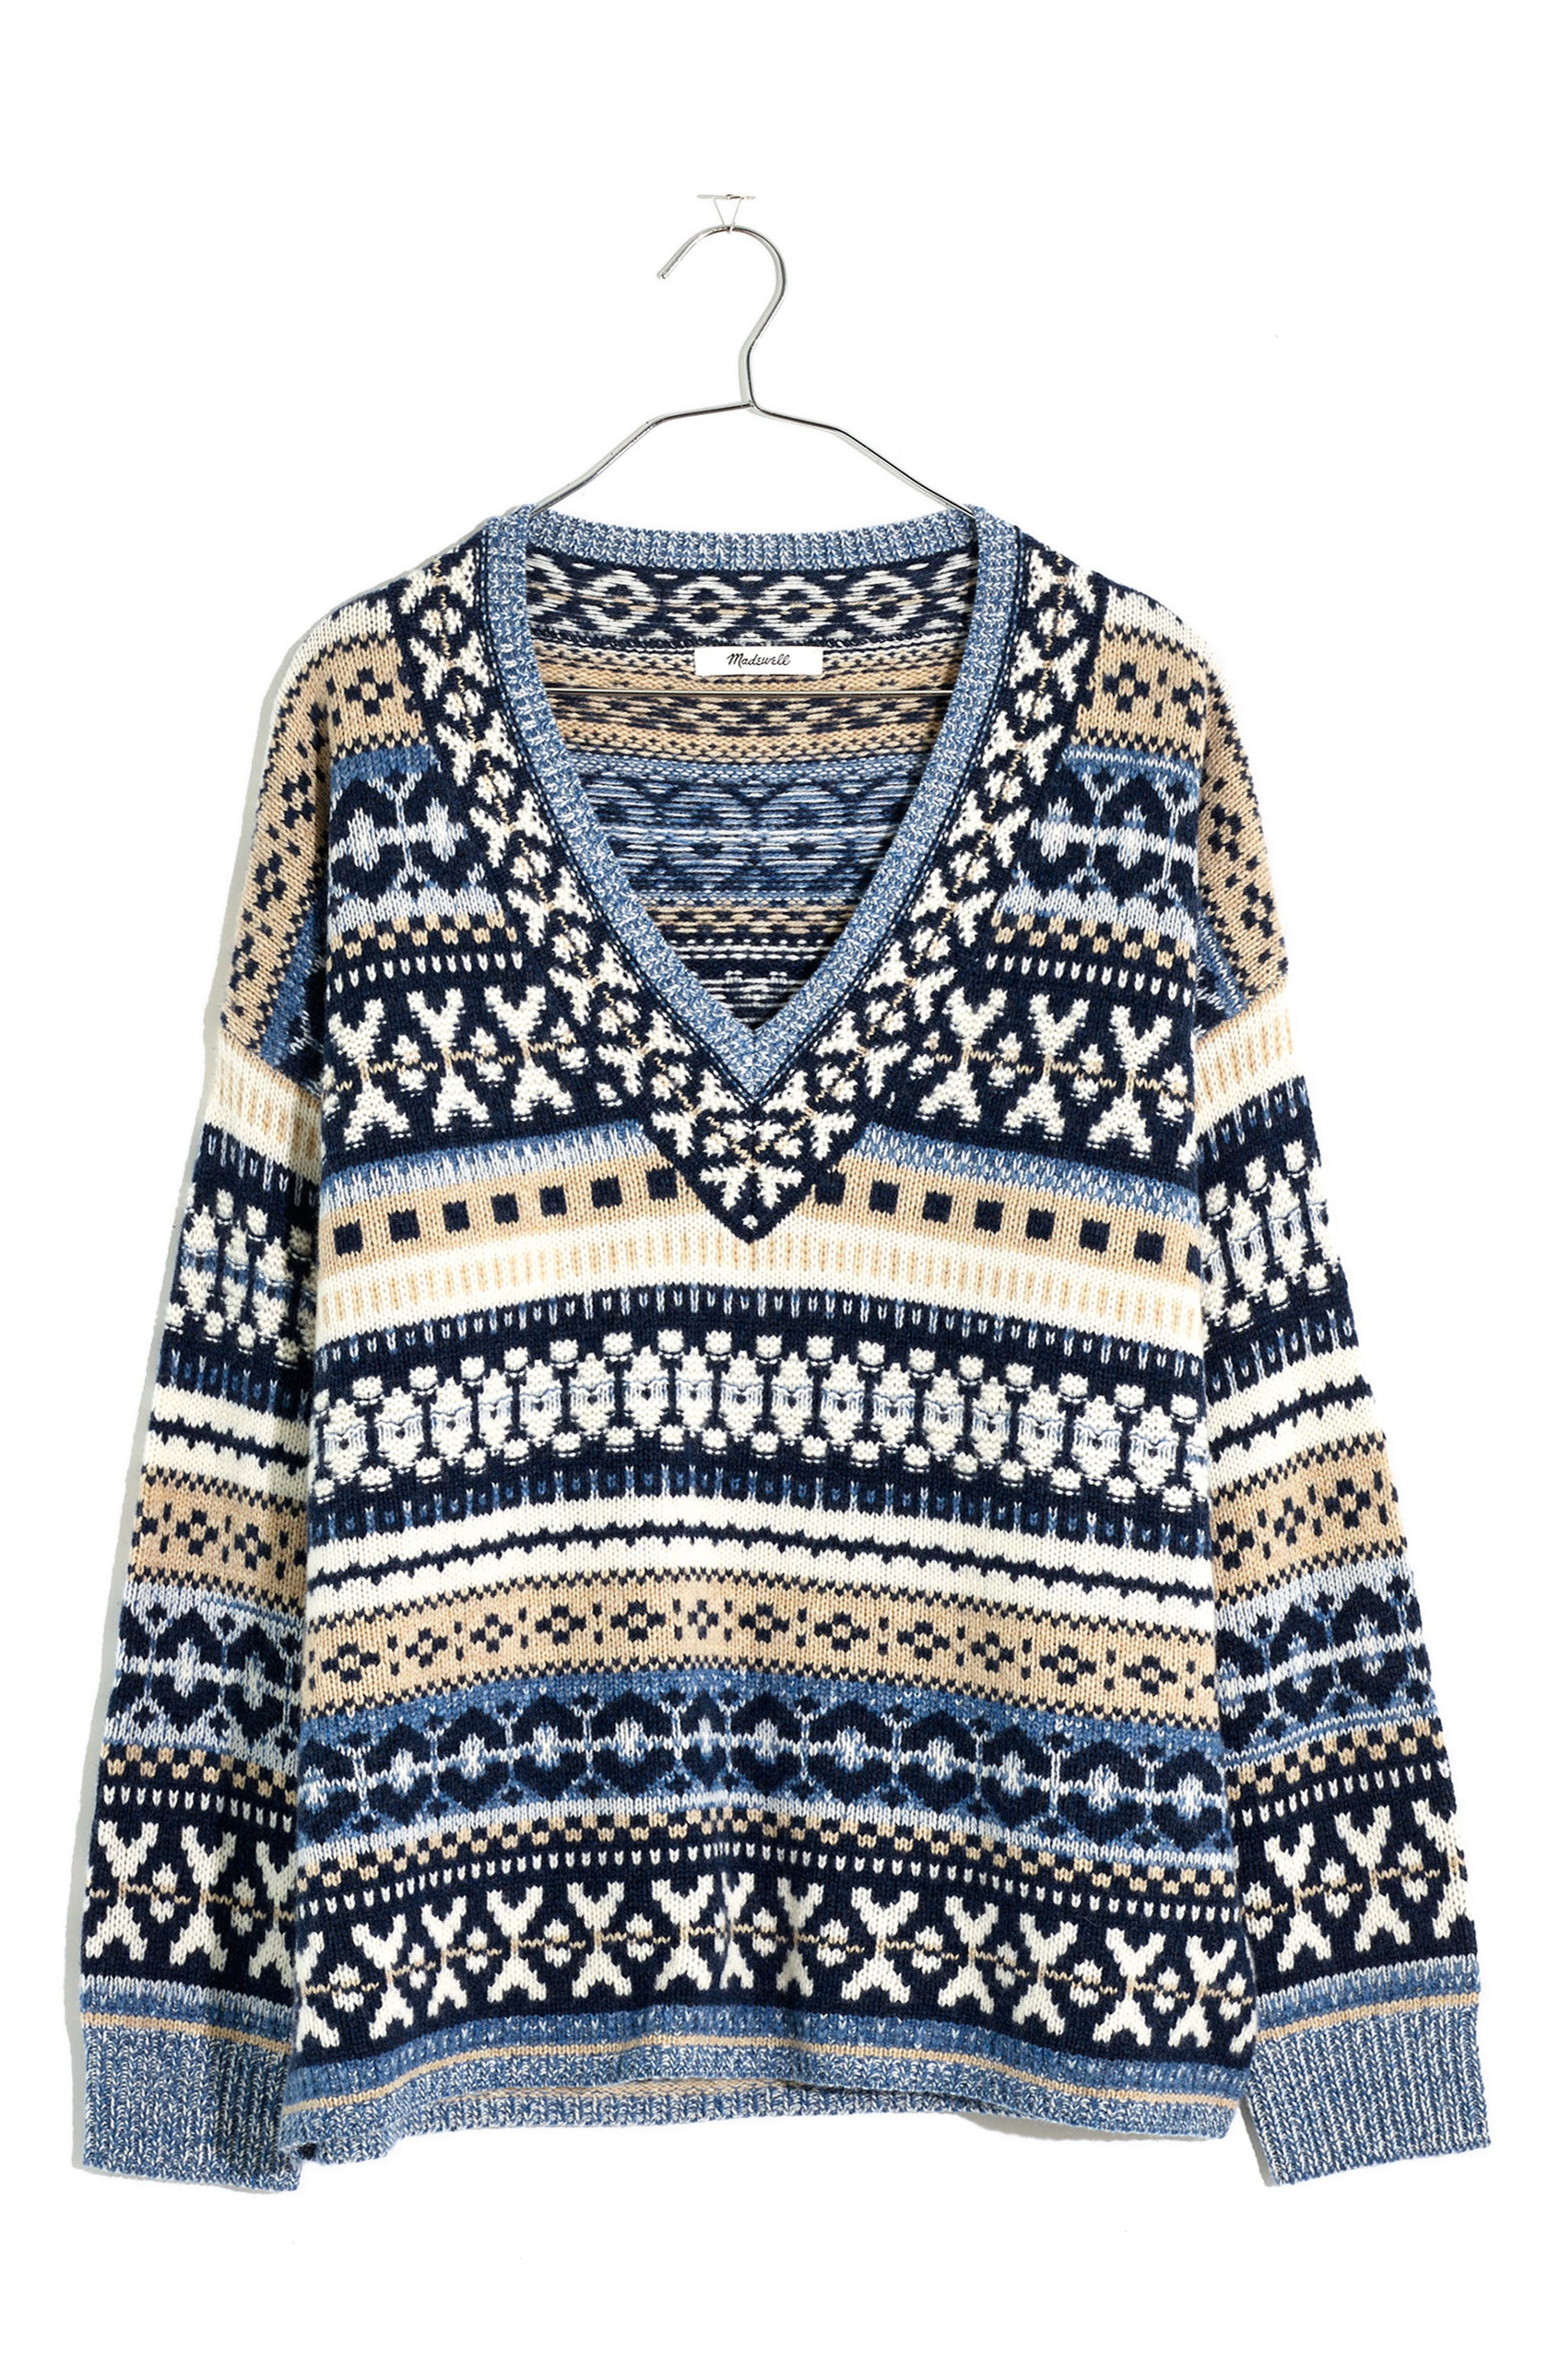 Men's Vintage Sweaters History Womens Madewell Forrest Fair Isle Womens V-Neck Sweater $68.60 AT vintagedancer.com